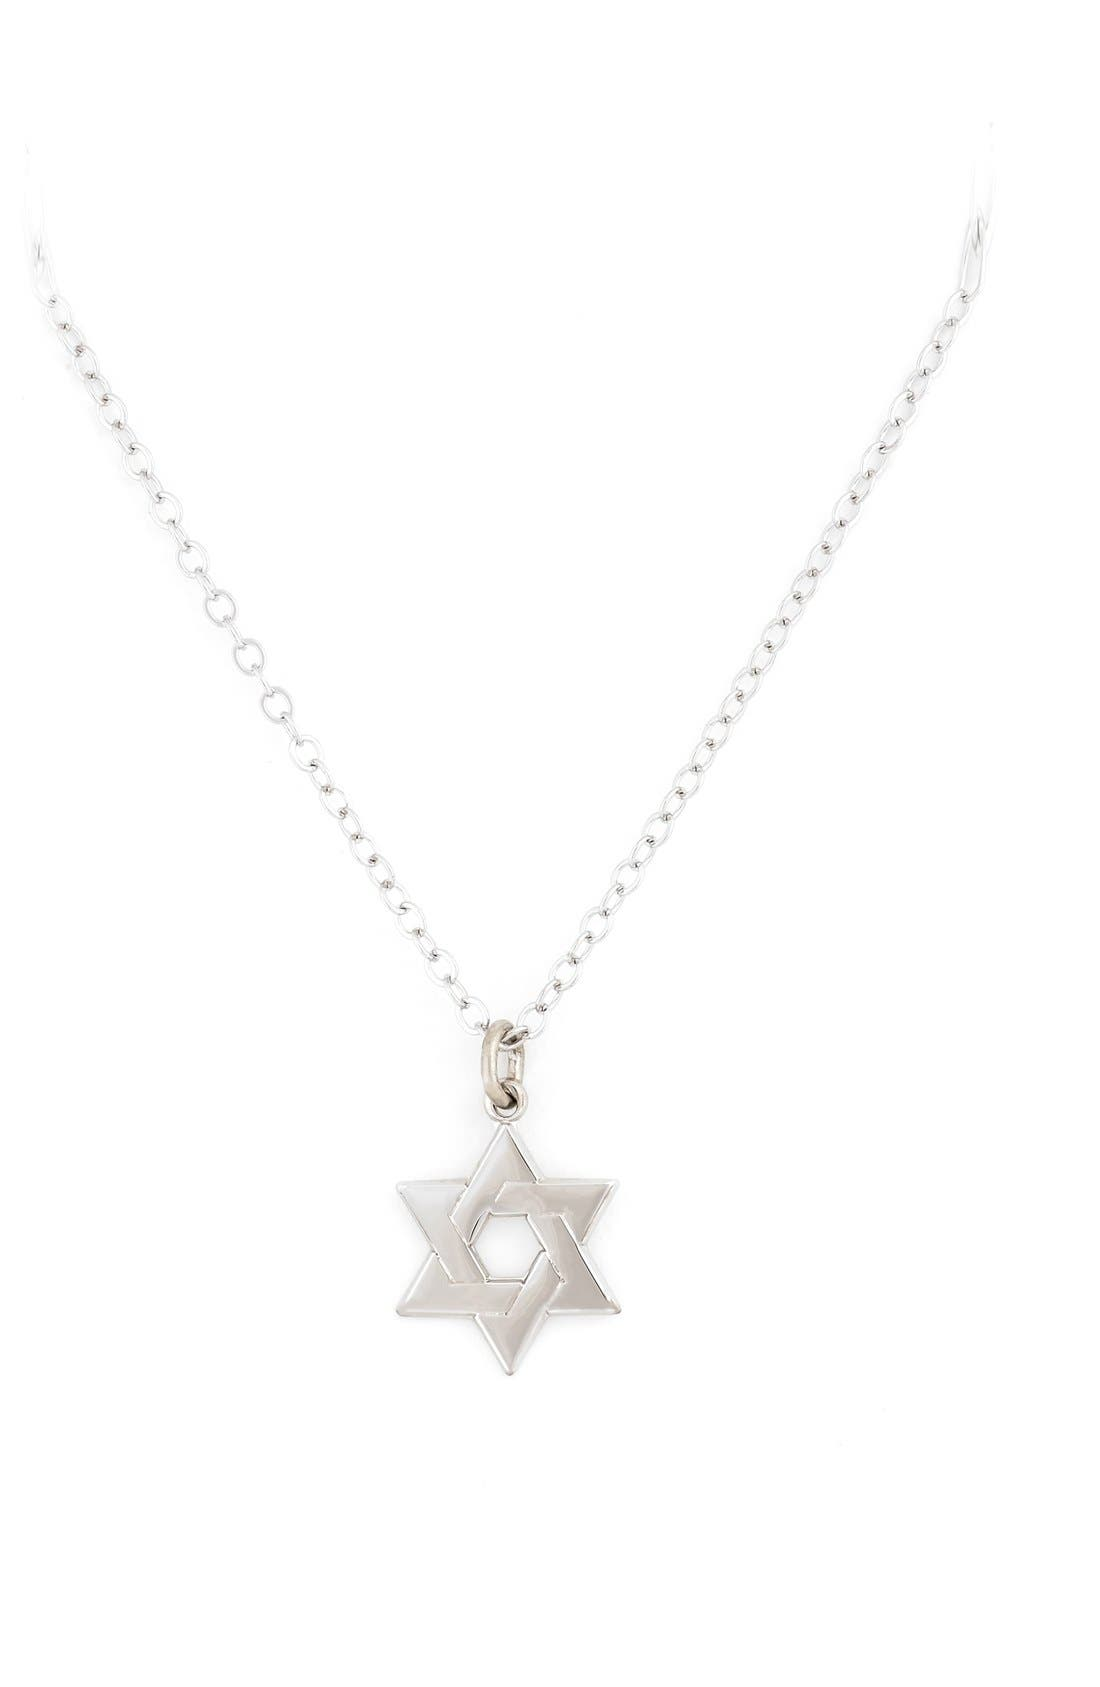 Star of David Sterling Silver Pendant Necklace,                             Main thumbnail 1, color,                             000